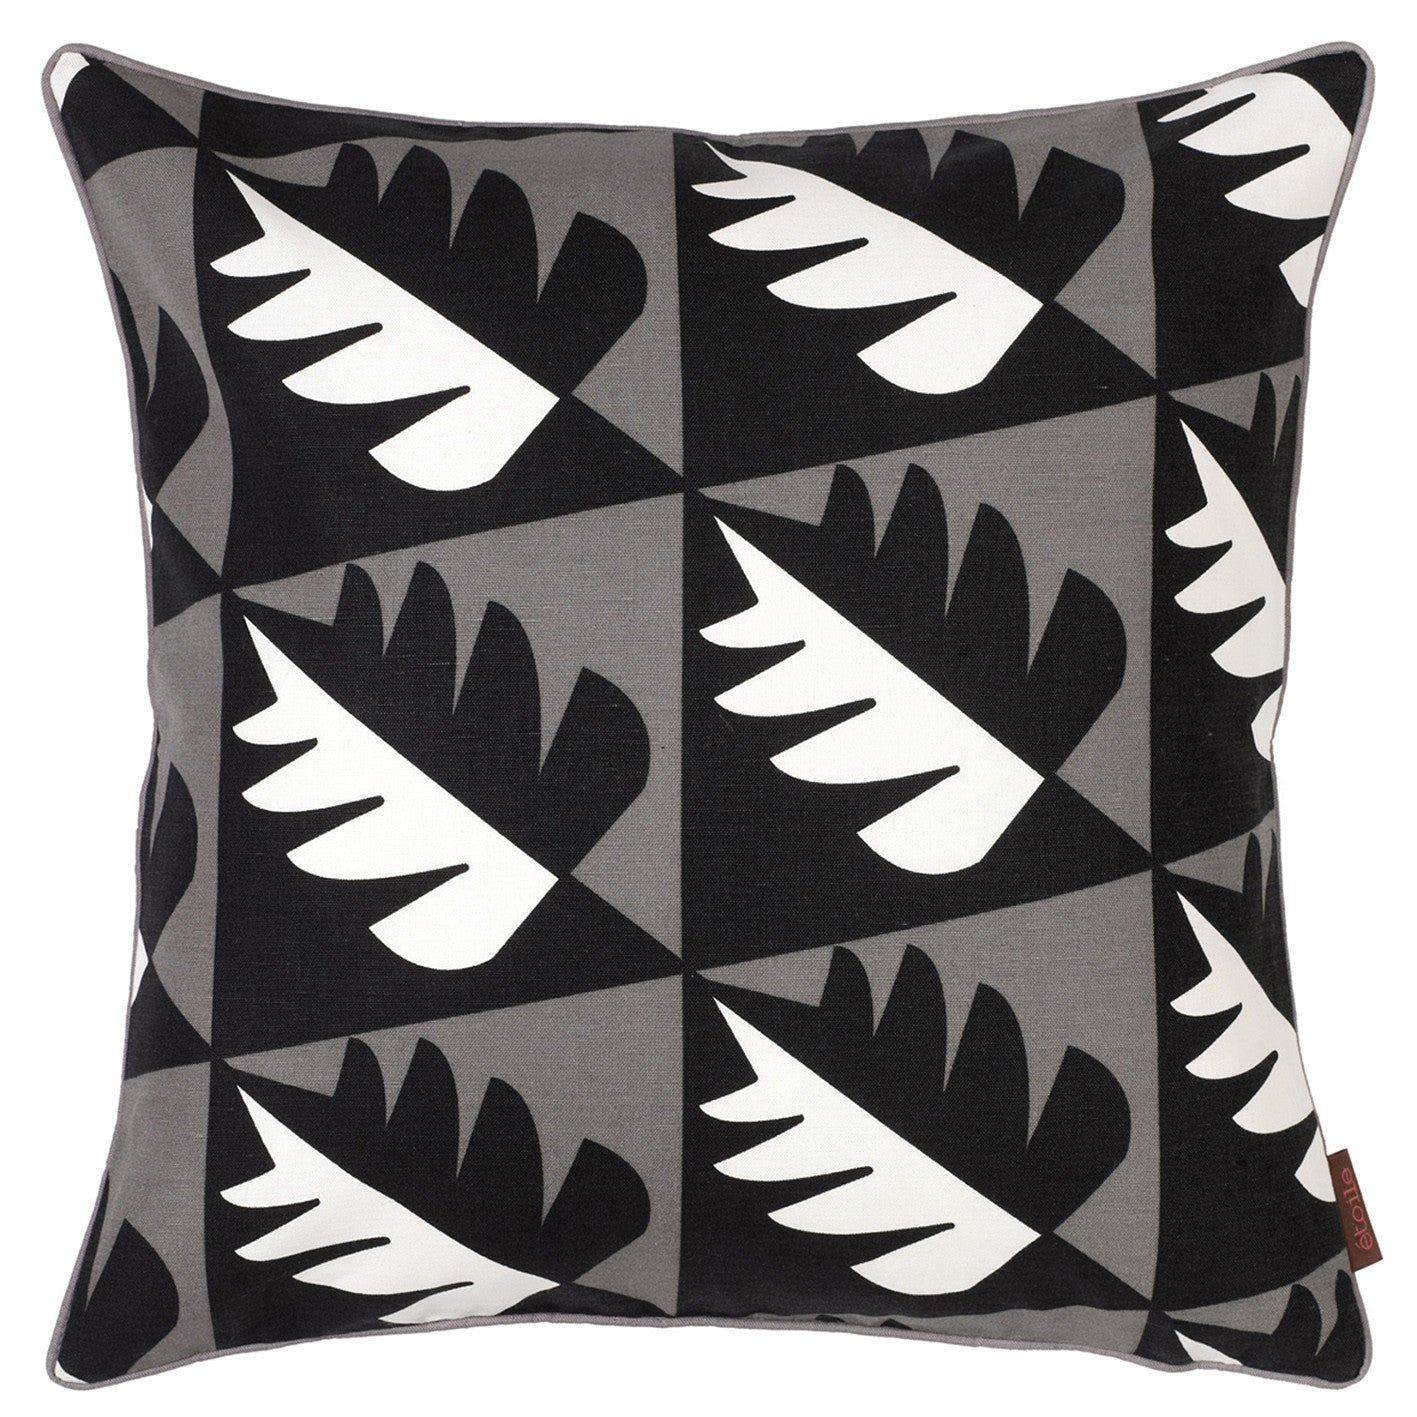 Betty Geometric Tree Pattern Cotton Linen Cushion in Stone Grey 45x45cm